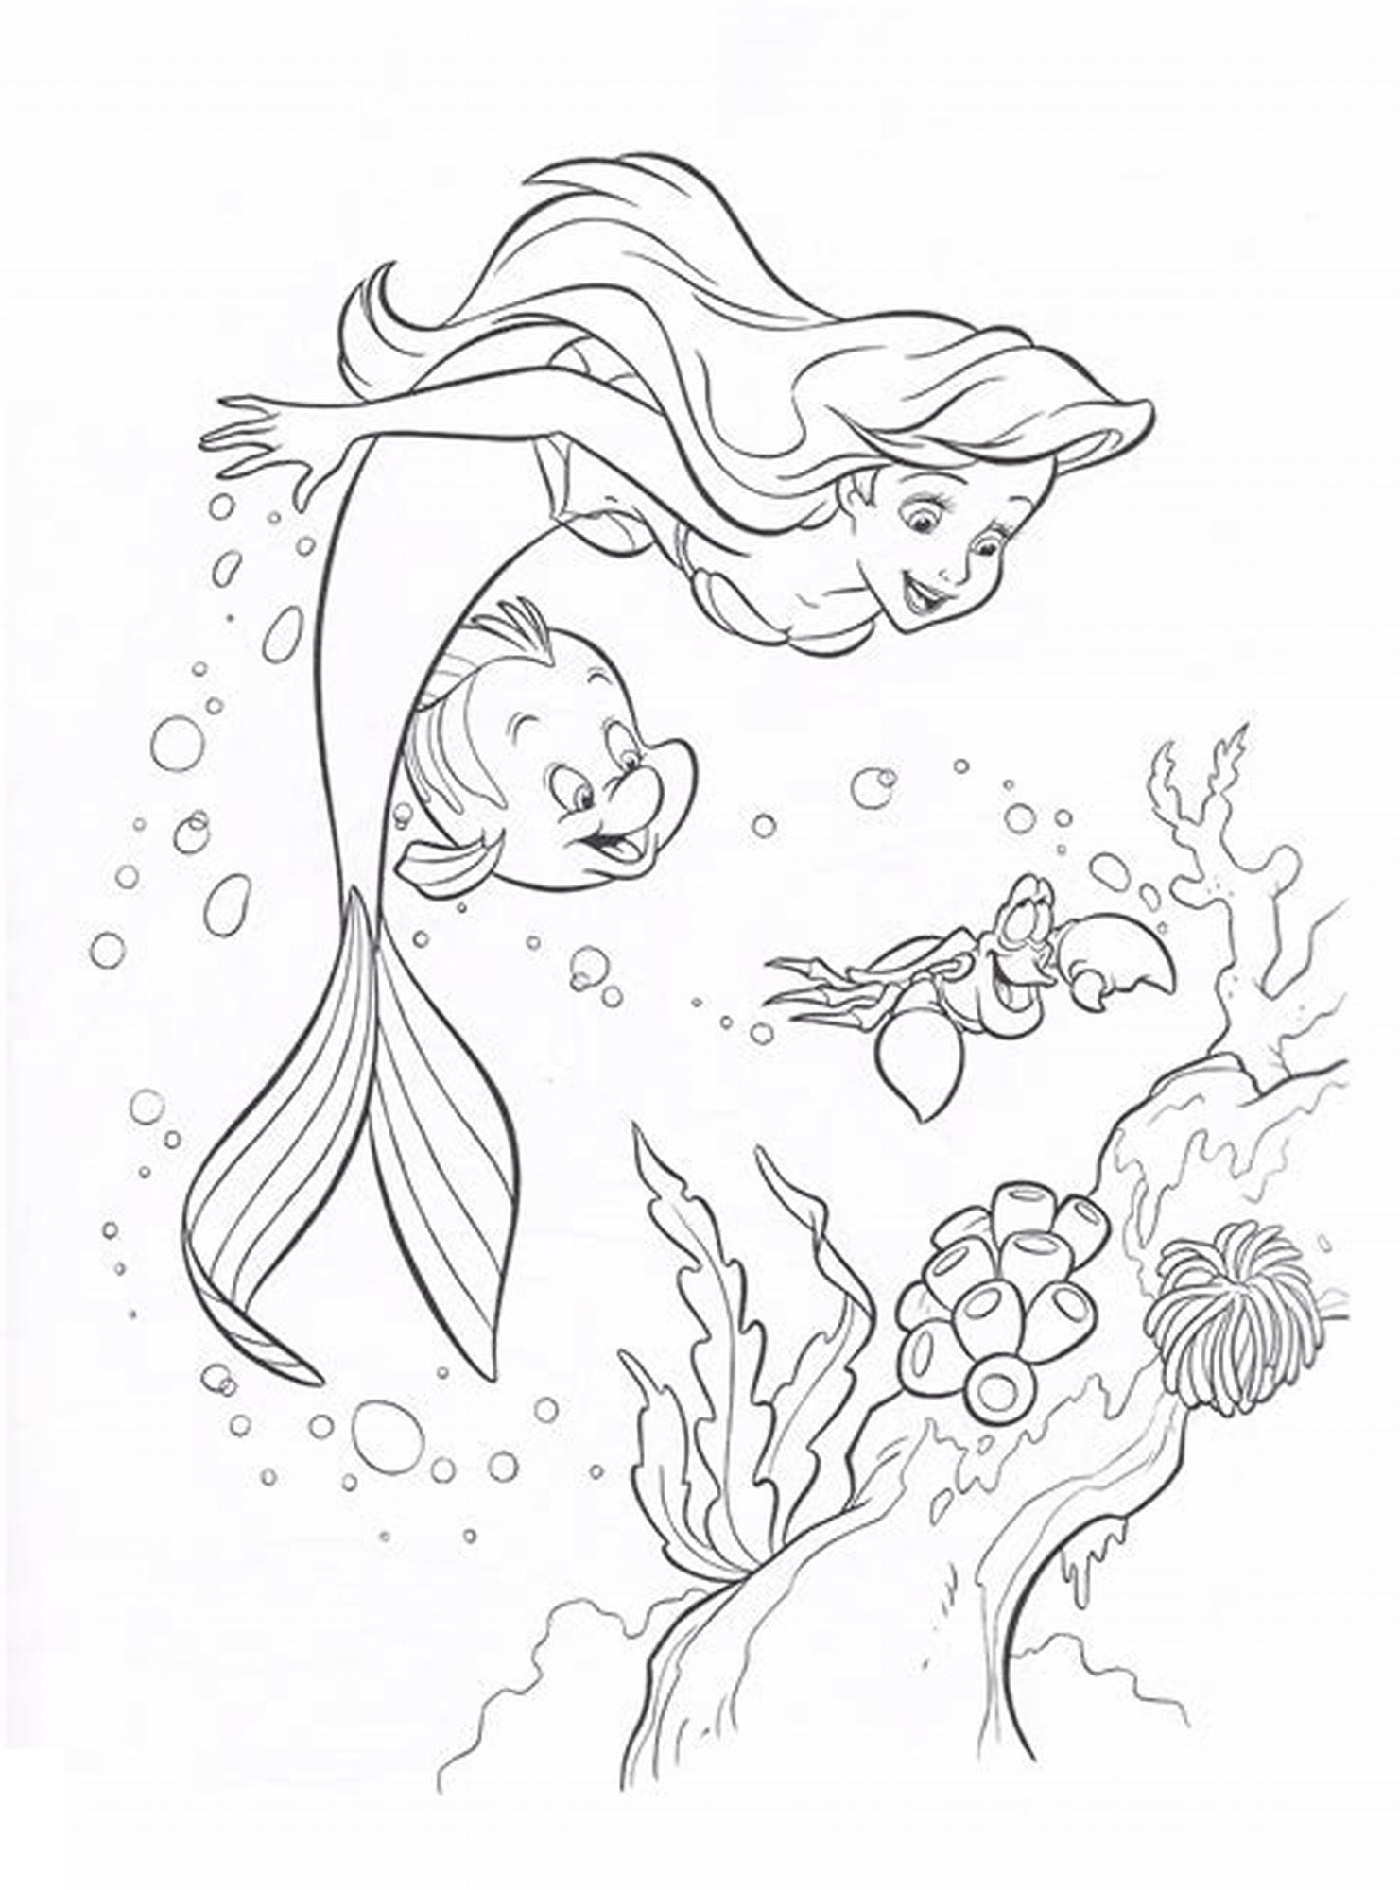 Ariel Mermaid Coloring Pages To Print